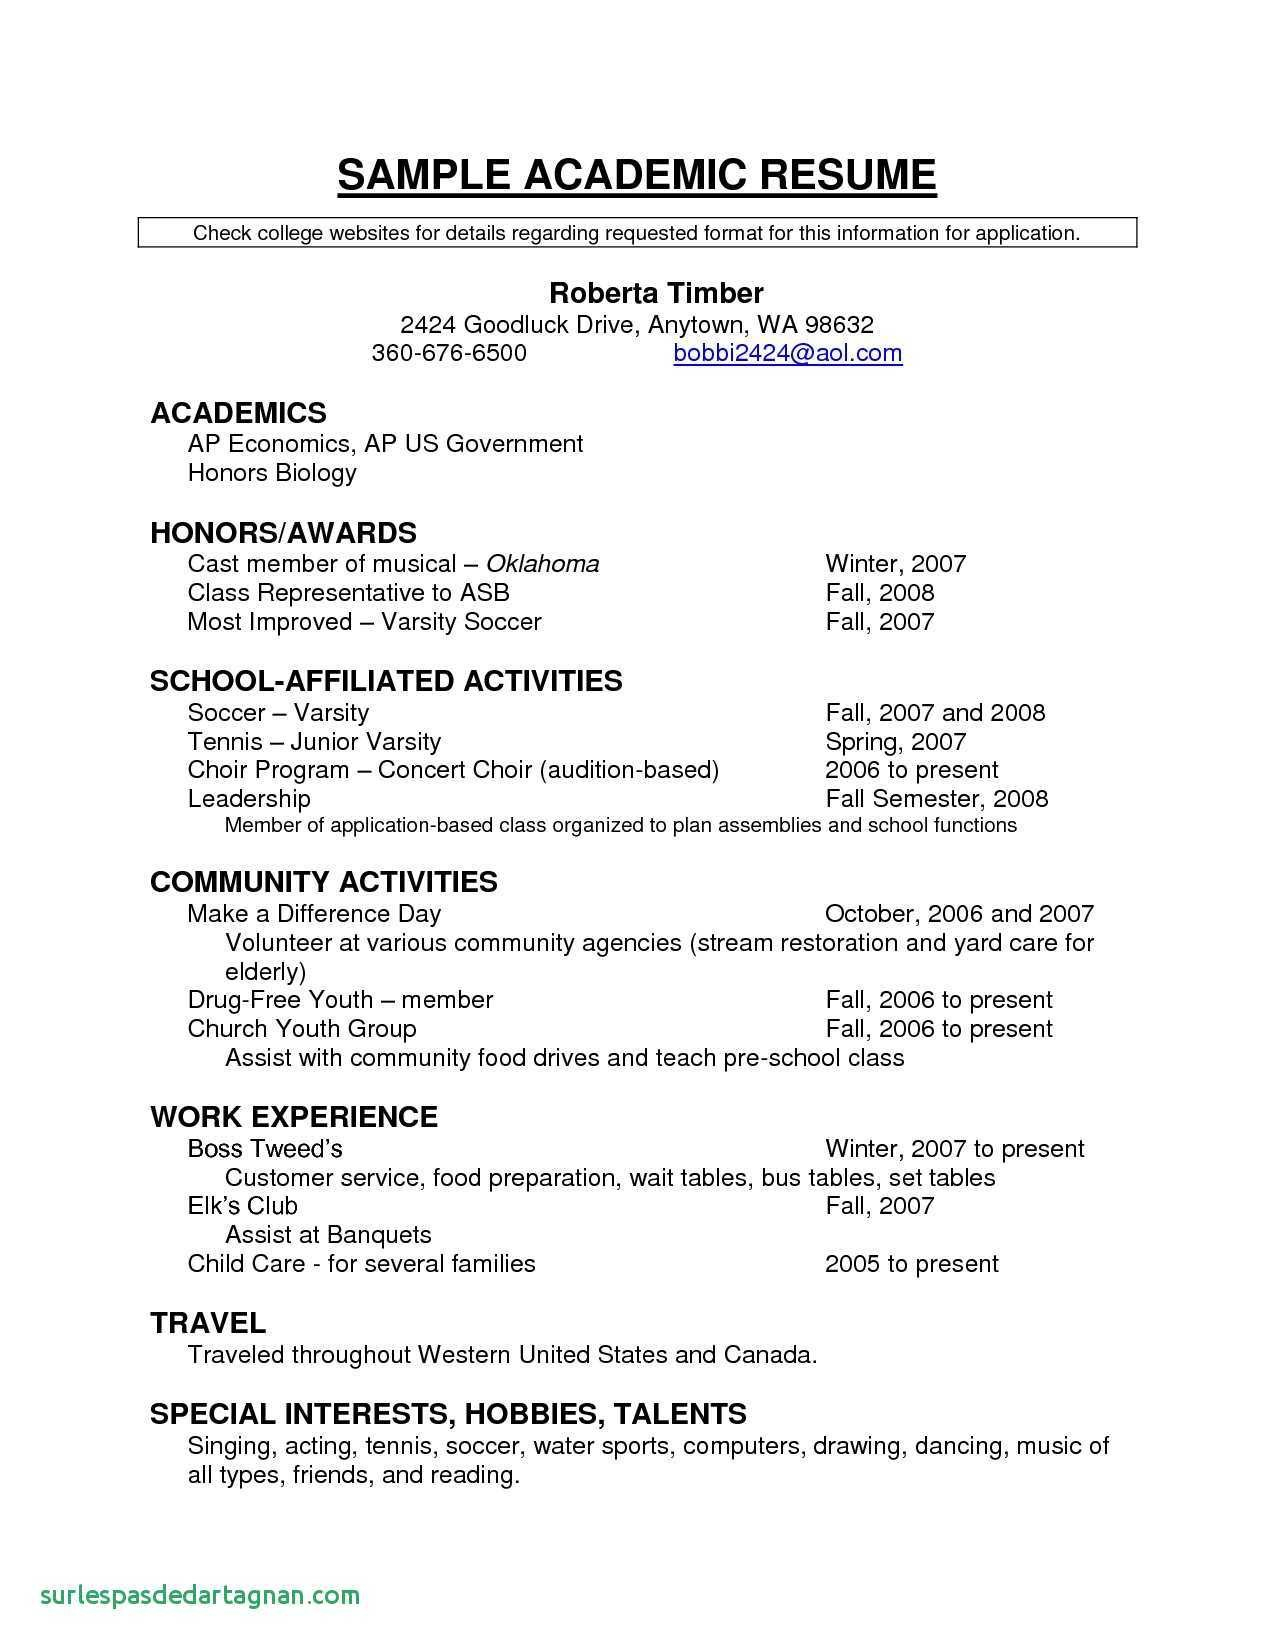 Perfect Resume Sample - Student Resume Samples Inspirational Unique Resume for Highschool